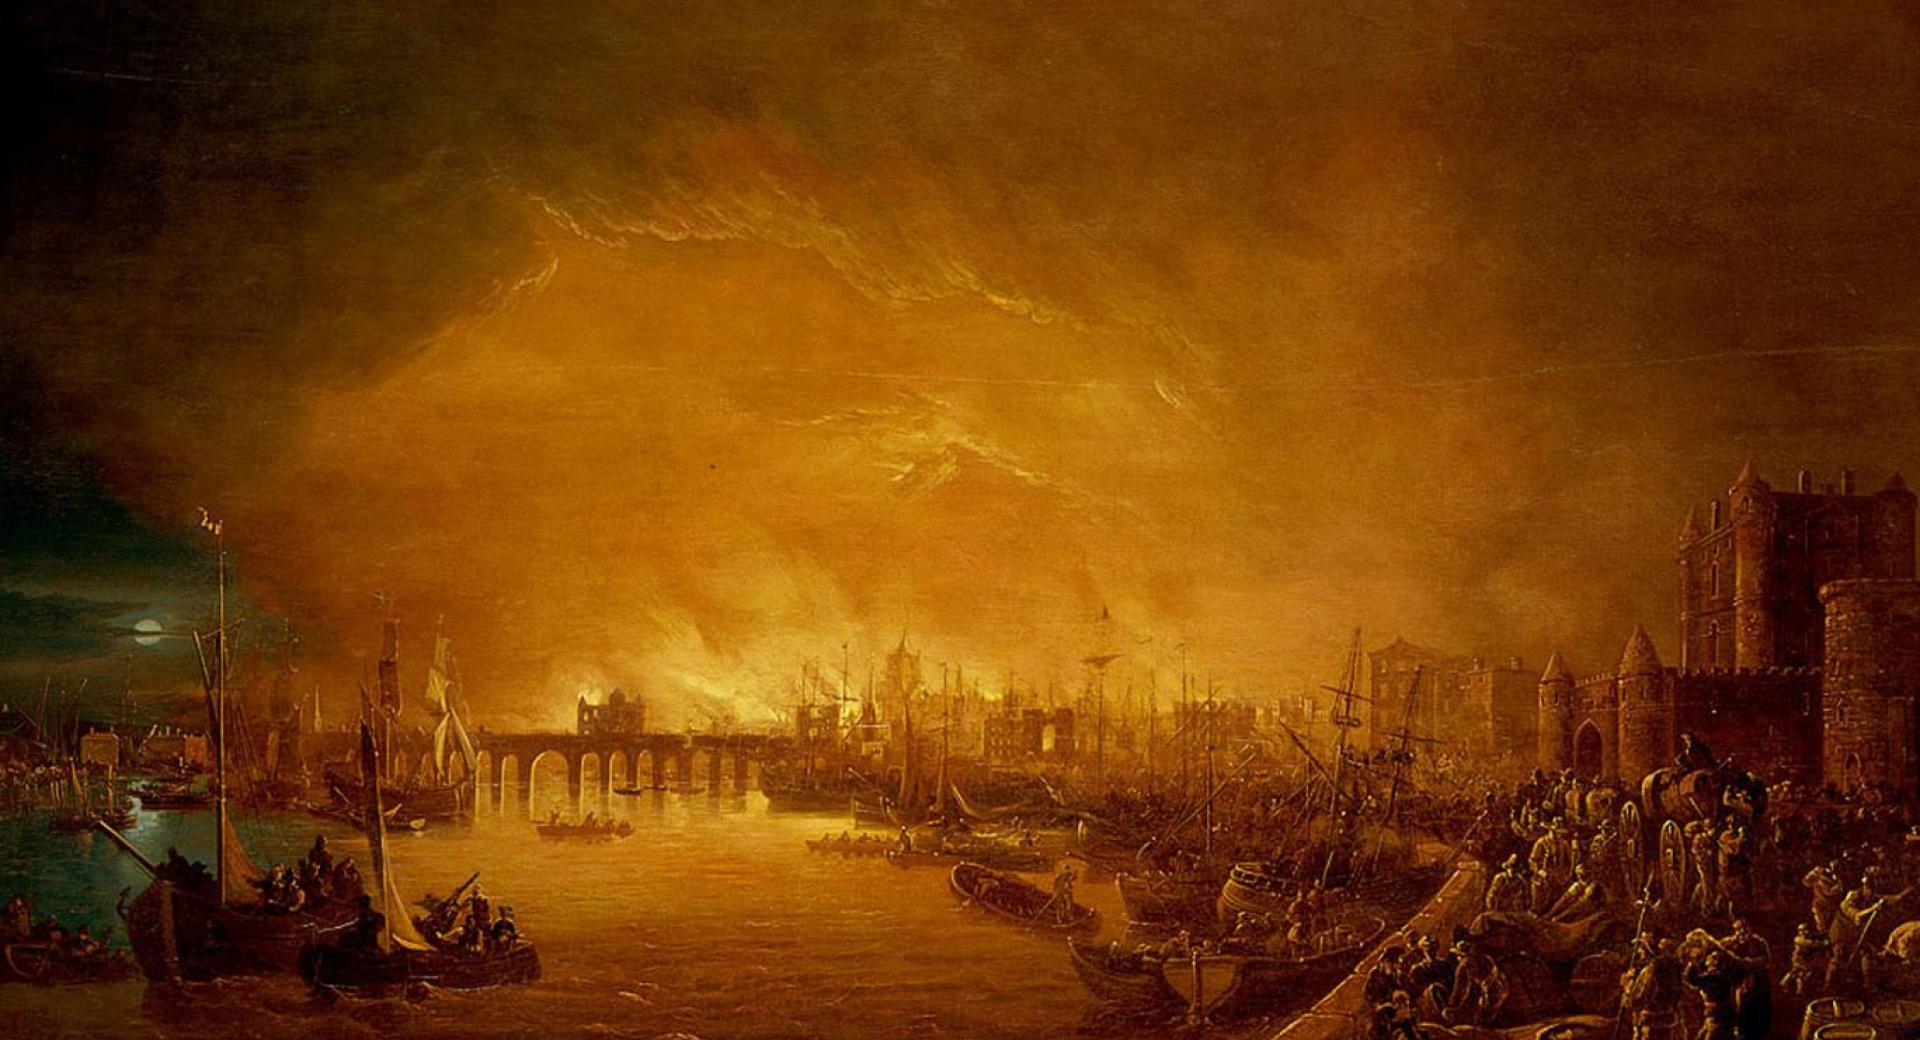 On september 2 1666 furnaces that werent quite out in the home of baker thomas farriner managed to start a fire that raged for four days and destroyed